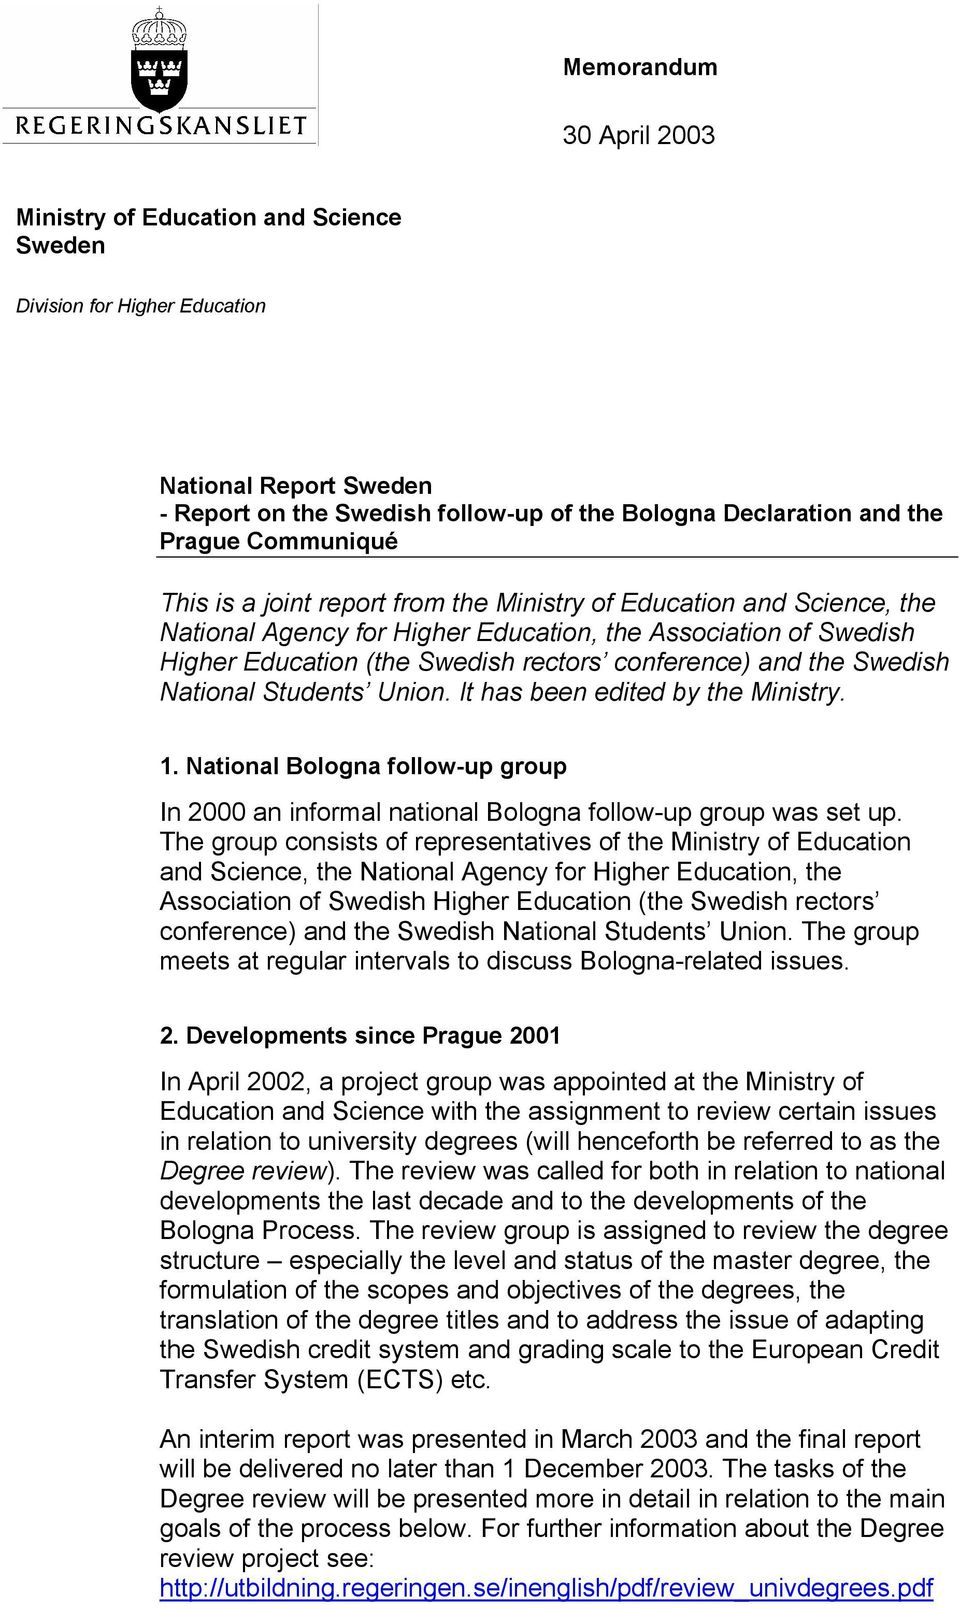 and the Swedish National Students Union. It has been edited by the Ministry. 1. National Bologna follow-up group In 2000 an informal national Bologna follow-up group was set up.